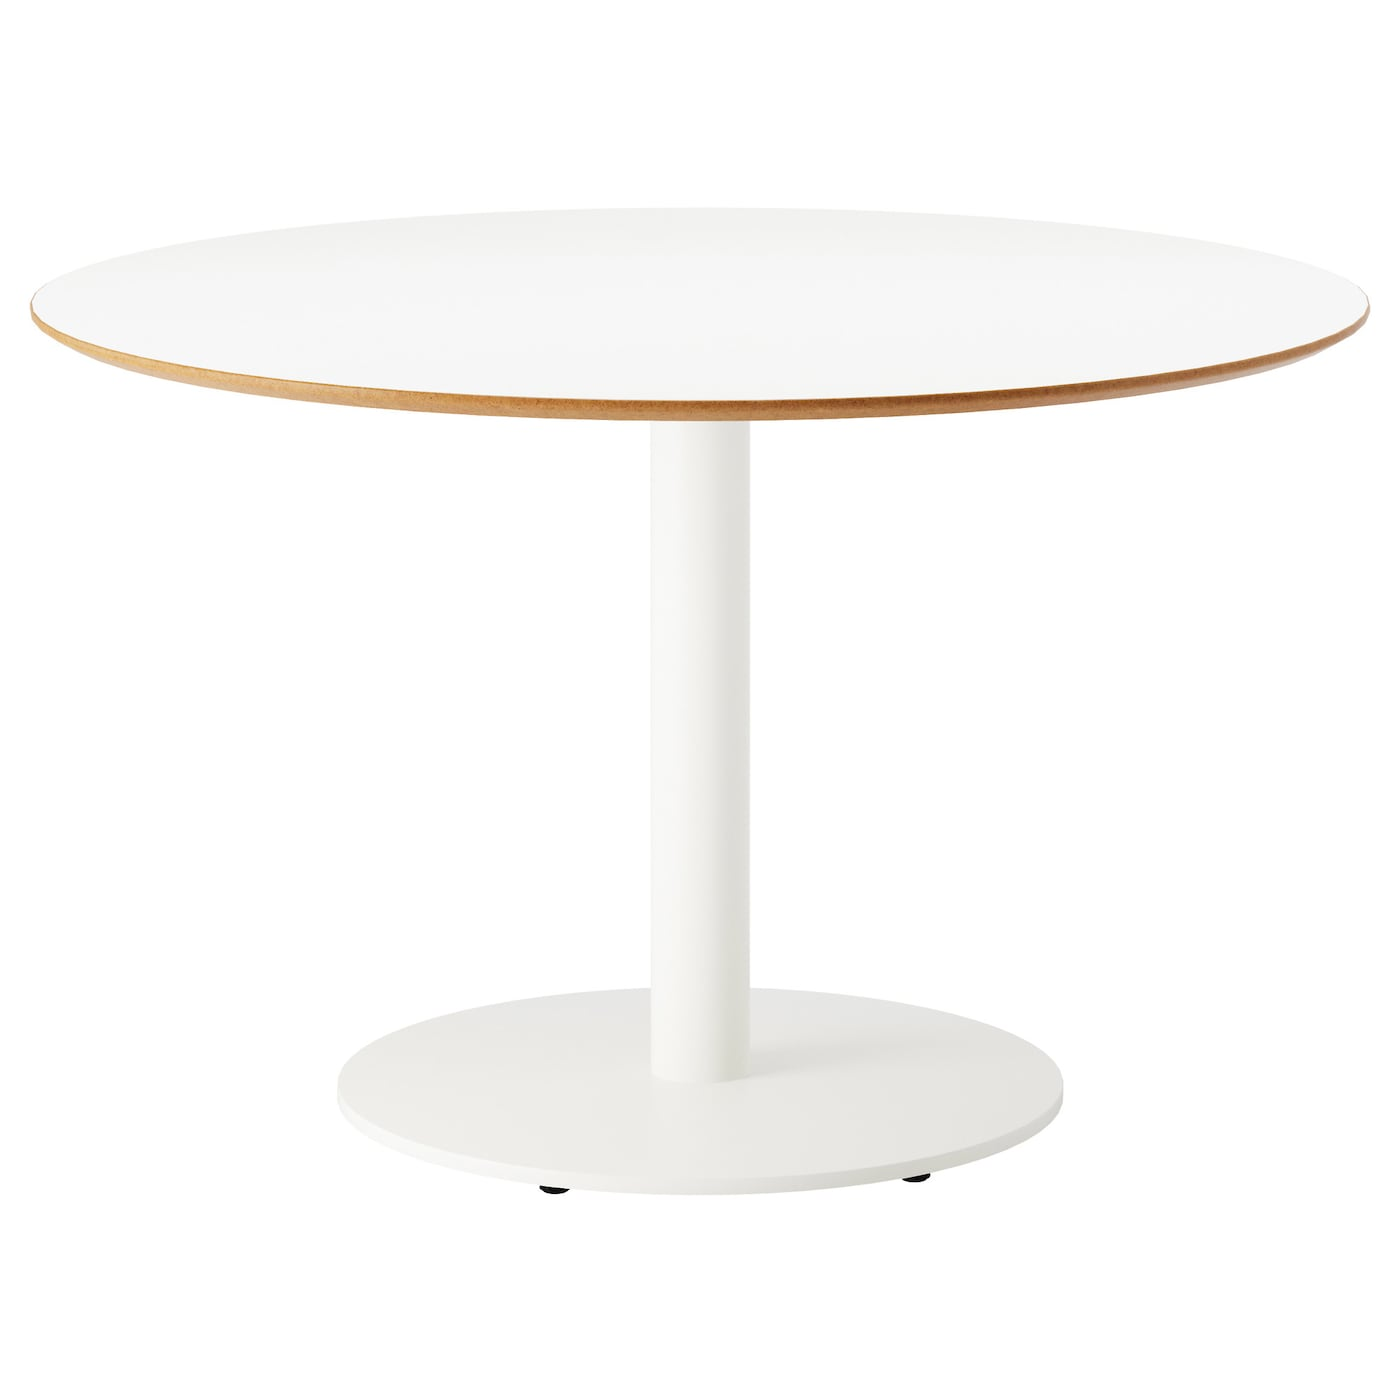 Billsta table white white 118 cm ikea - Ikea table ronde blanche ...